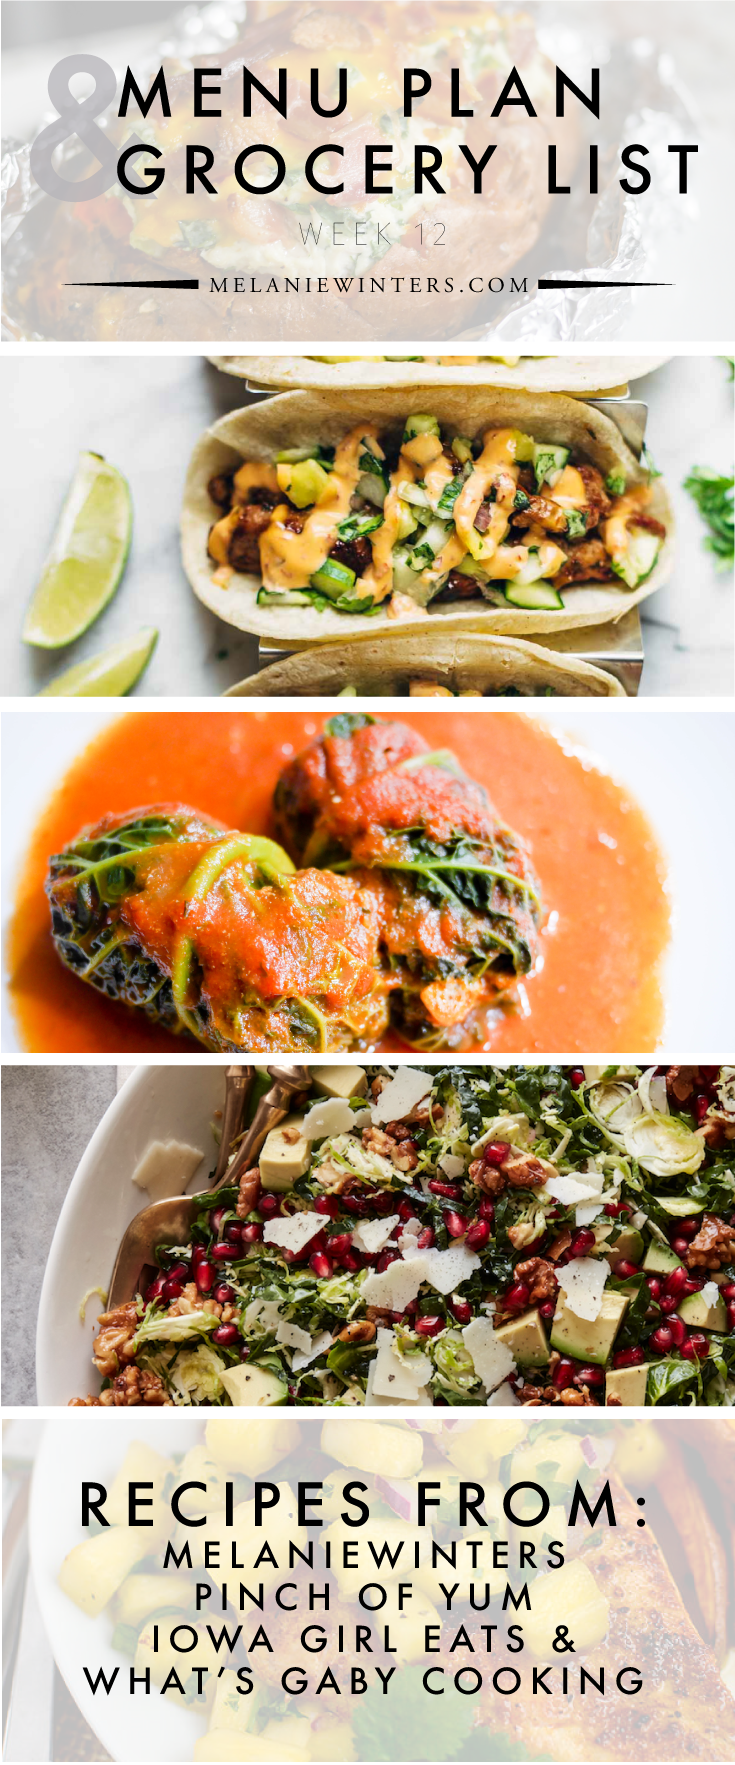 Loaded with fresh ingredients and packed with health, this week's meal plan is one you can feel good about this holiday season!